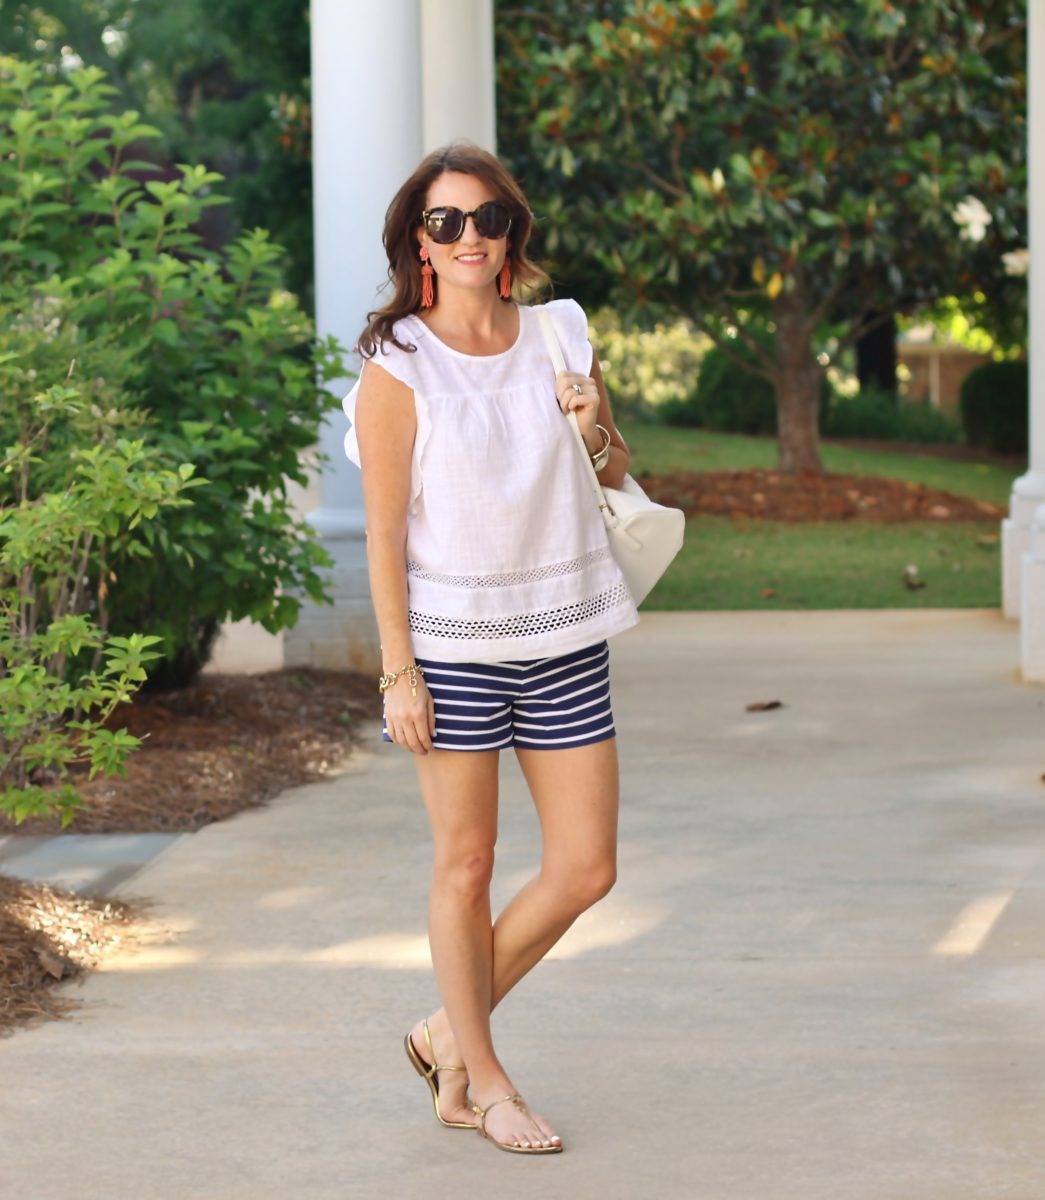 Cute Vacation Style via Peaches In A Pod Blog. Embroidered top, striped shorts, and backpack.